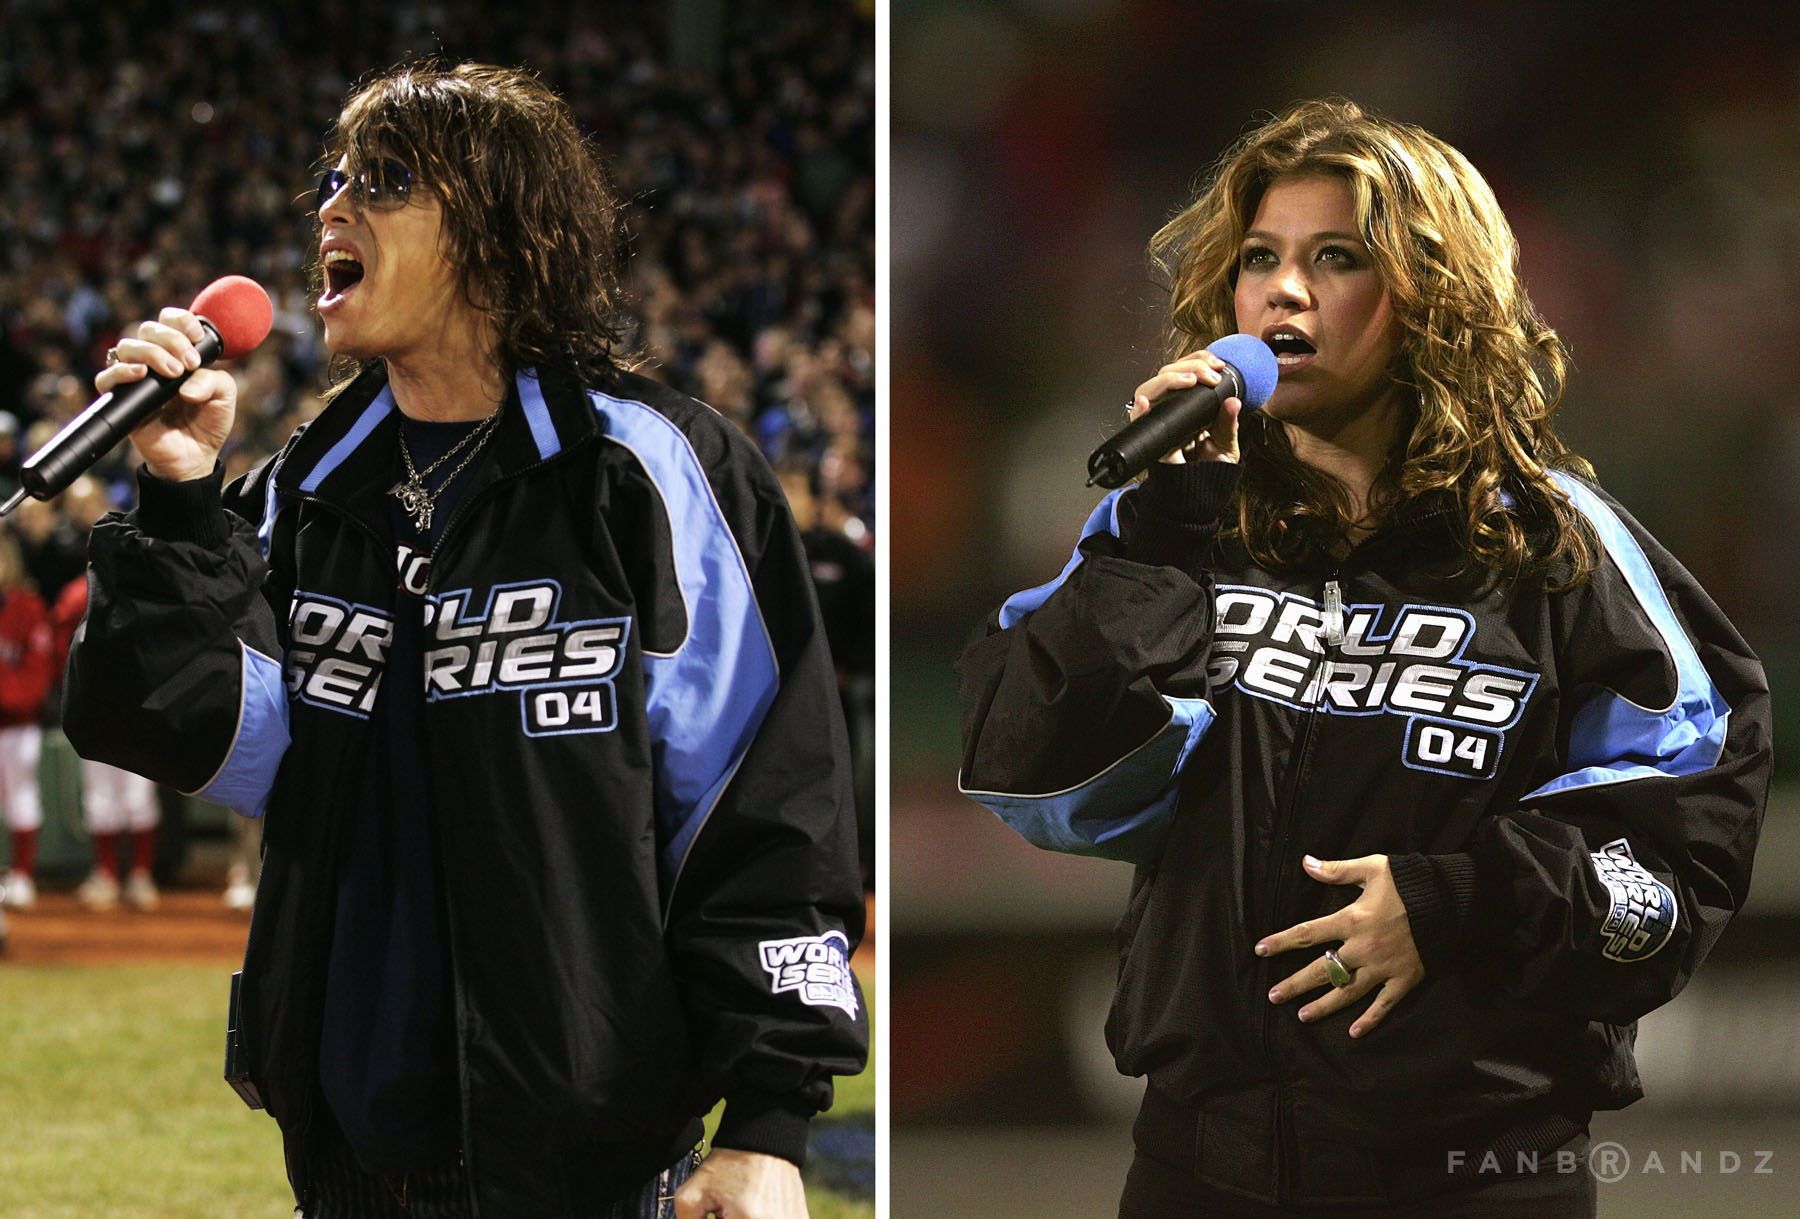 """Steve Tyler and Kelly Clarkson provided their platinum-selling voices for Game One's """"Star Spangled Banner"""" and """"God Bless America"""" renditions."""